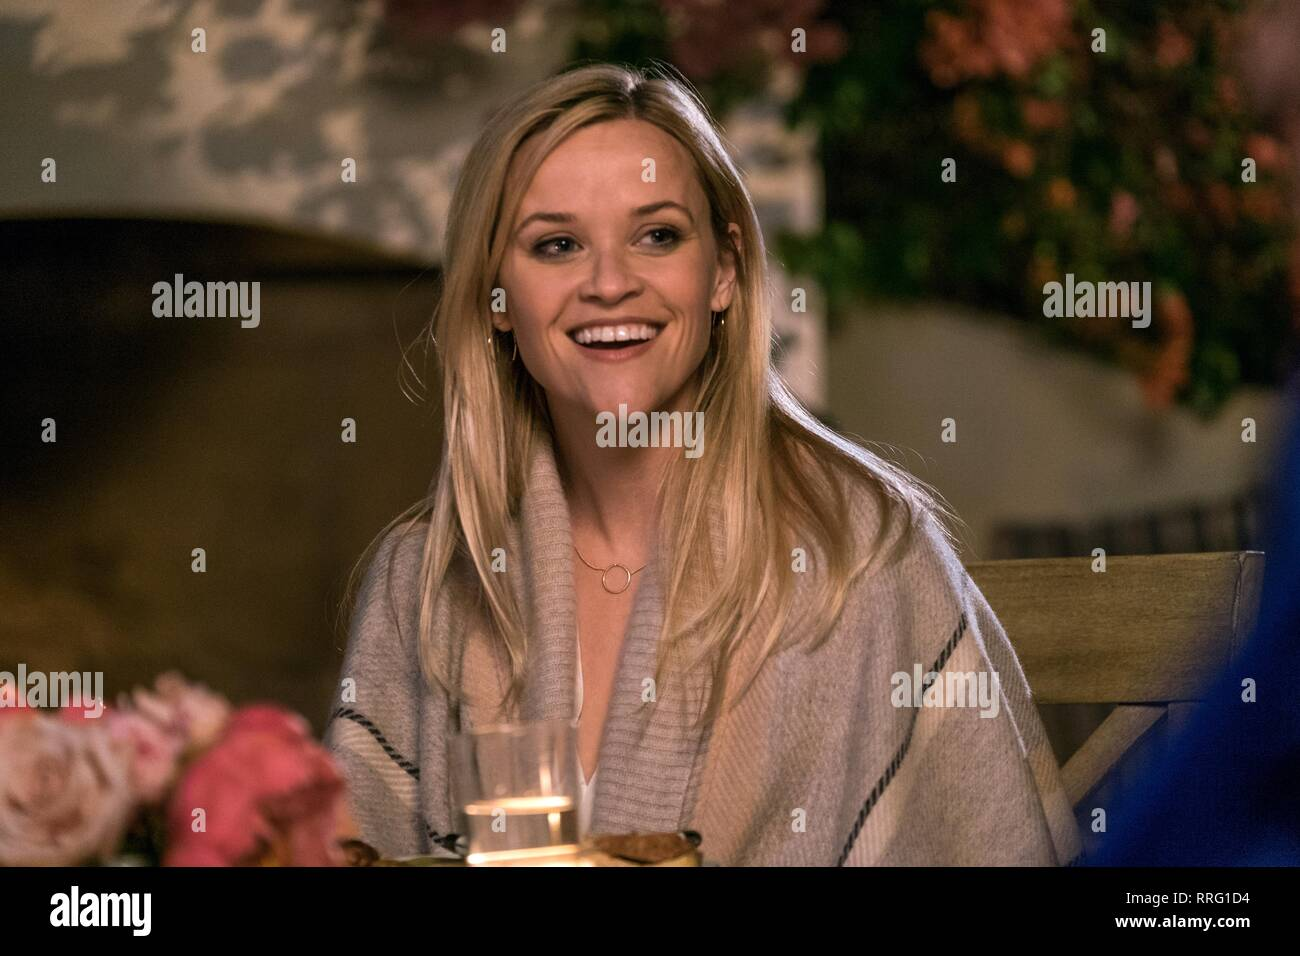 À la maison, Reese Witherspoon, 2017 Photo Stock